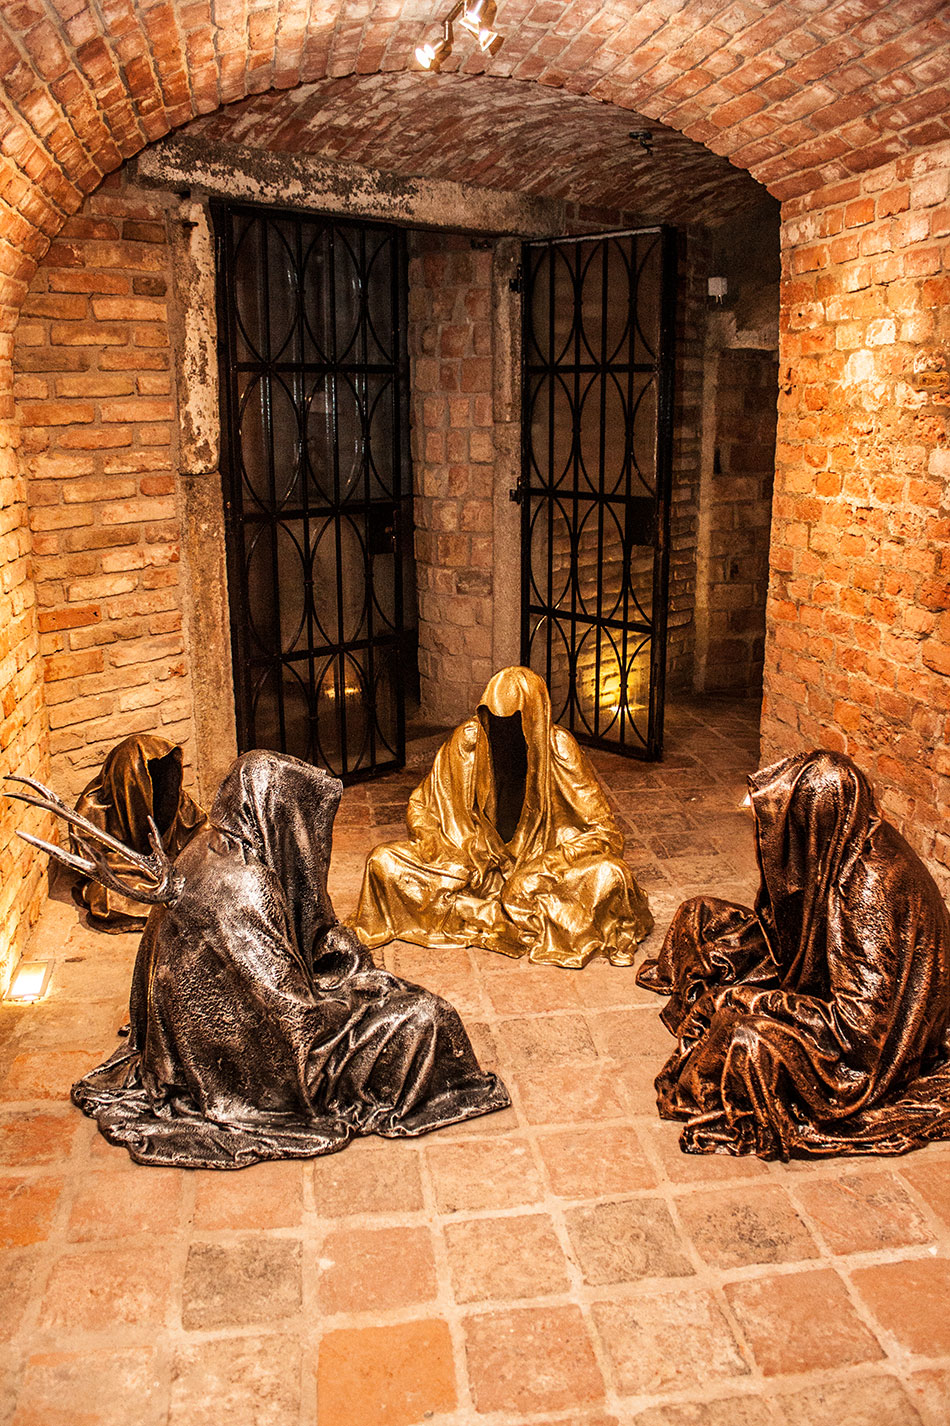 guardians-of-time-sculptor-manfred-kielnhofer-contemporary-modern-fine-arts-antique-sculpture-sttue-art-design-2534